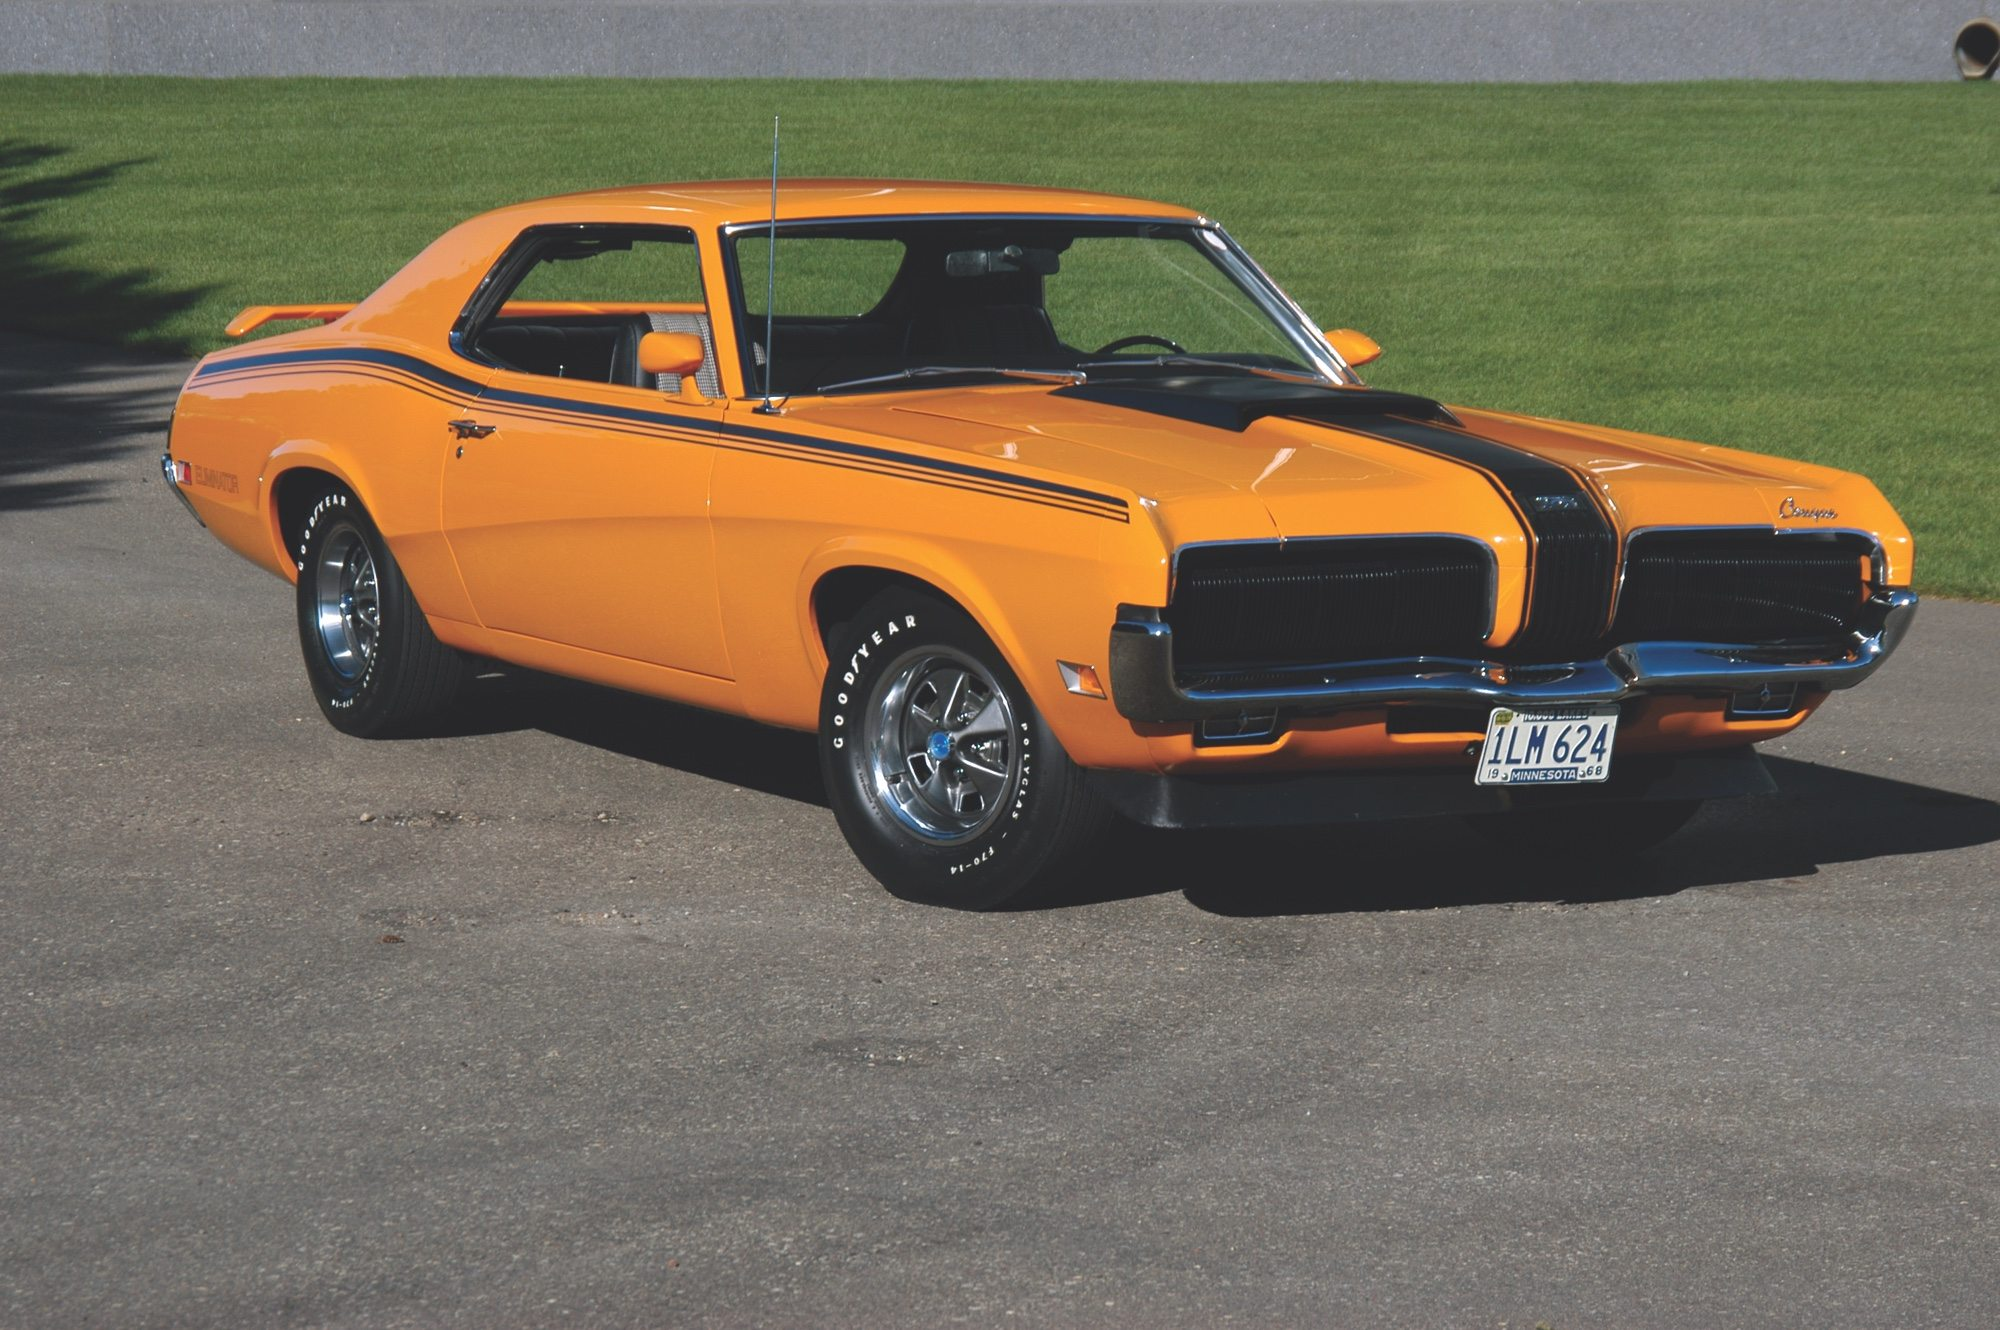 1970 Mercury Cougar Eliminator Muscle Car